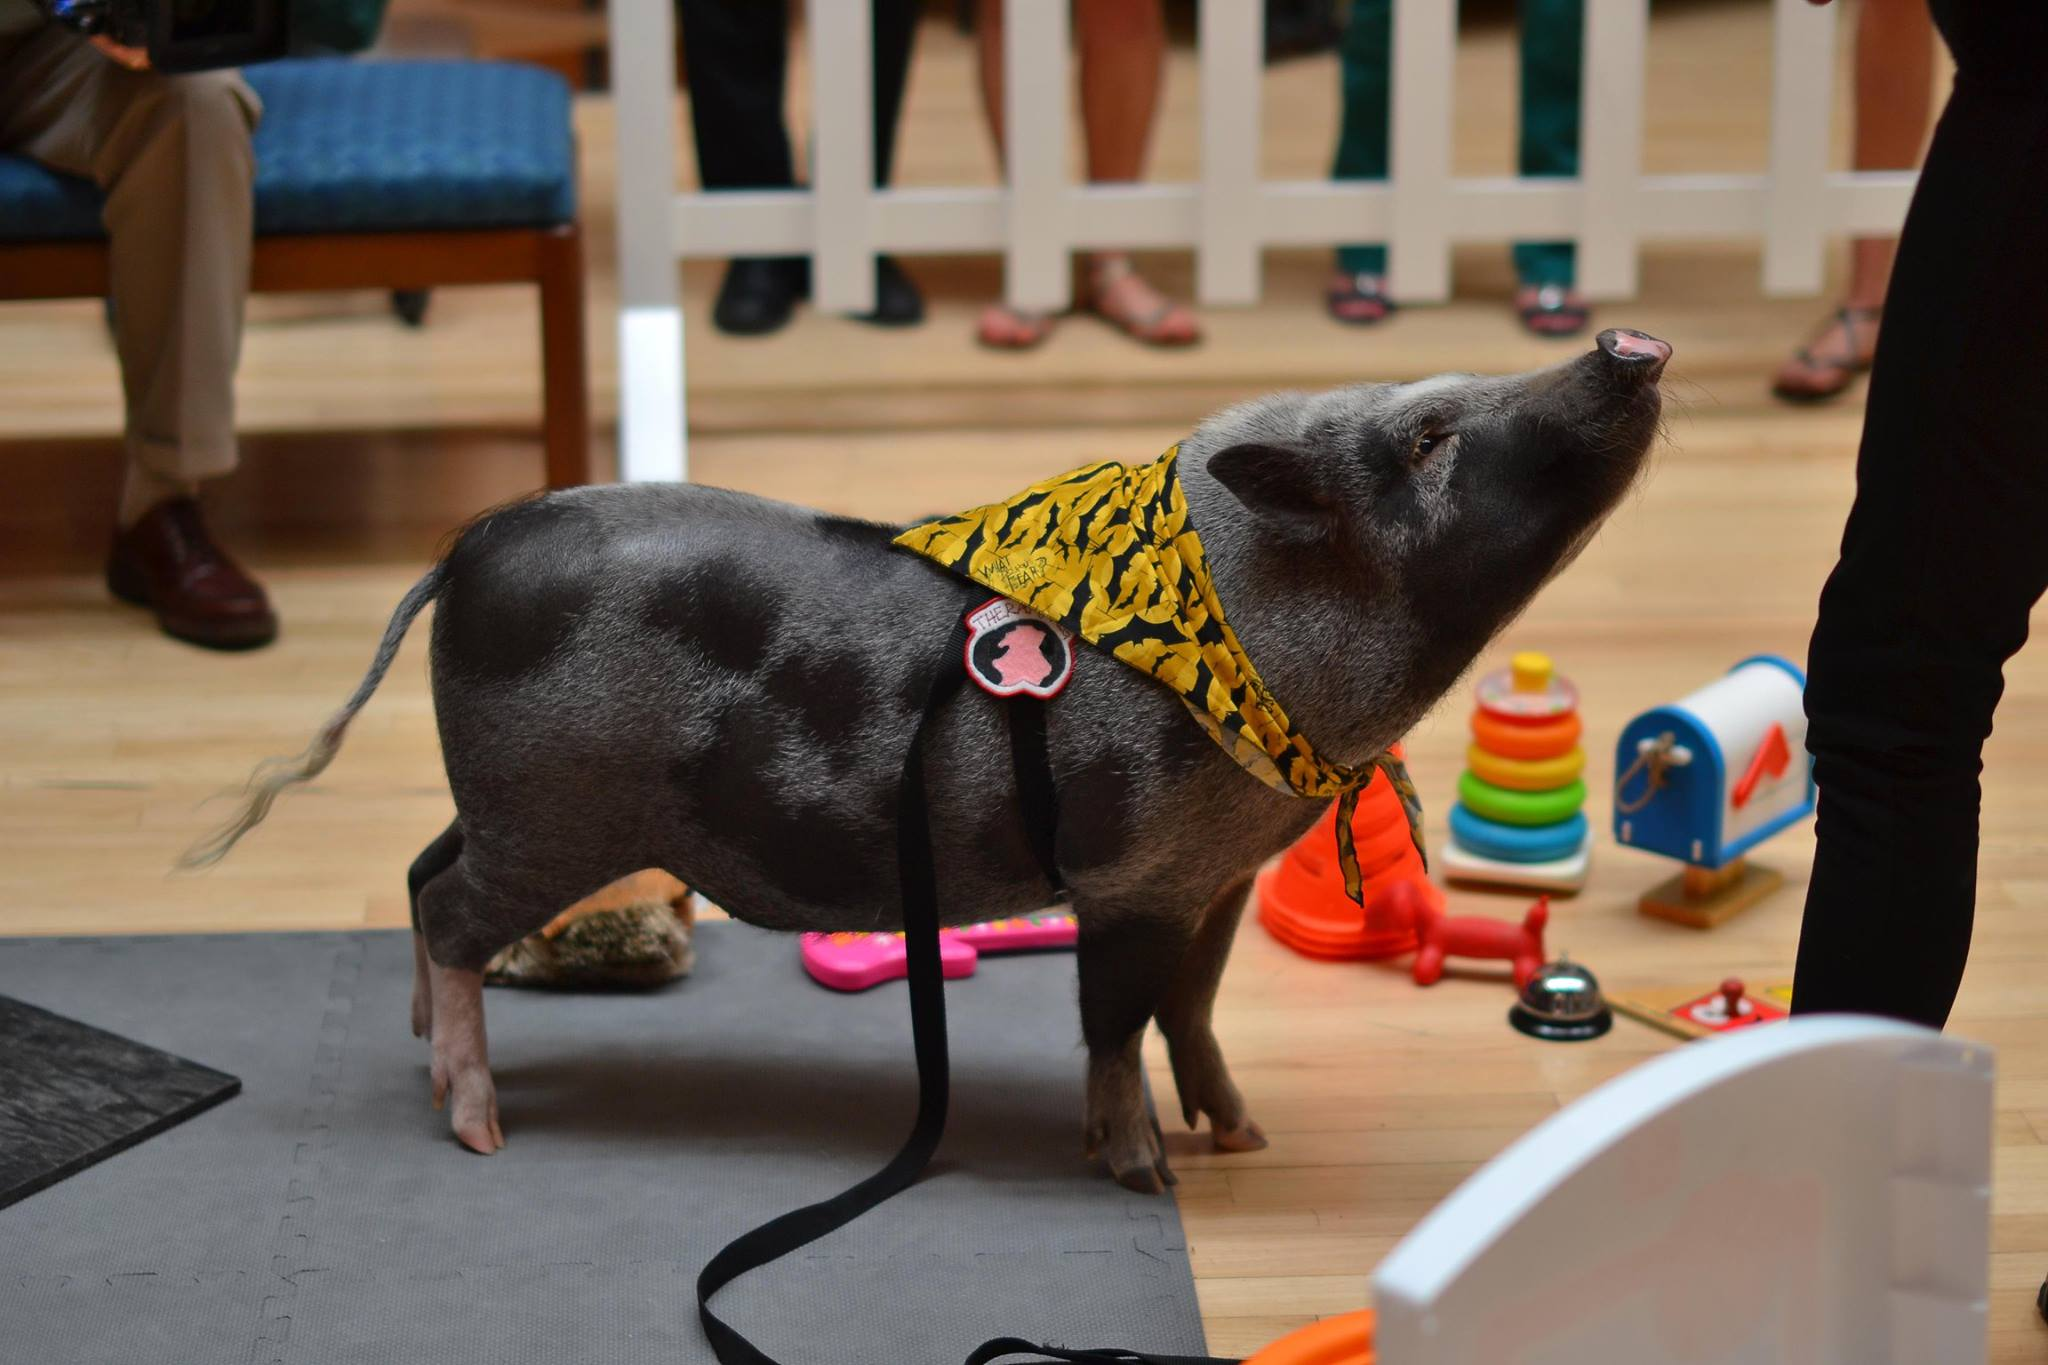 Norman, the Therapy Pig, assuages stress at the Hamon Arts Library. (Photo by Rueben Gonzales(